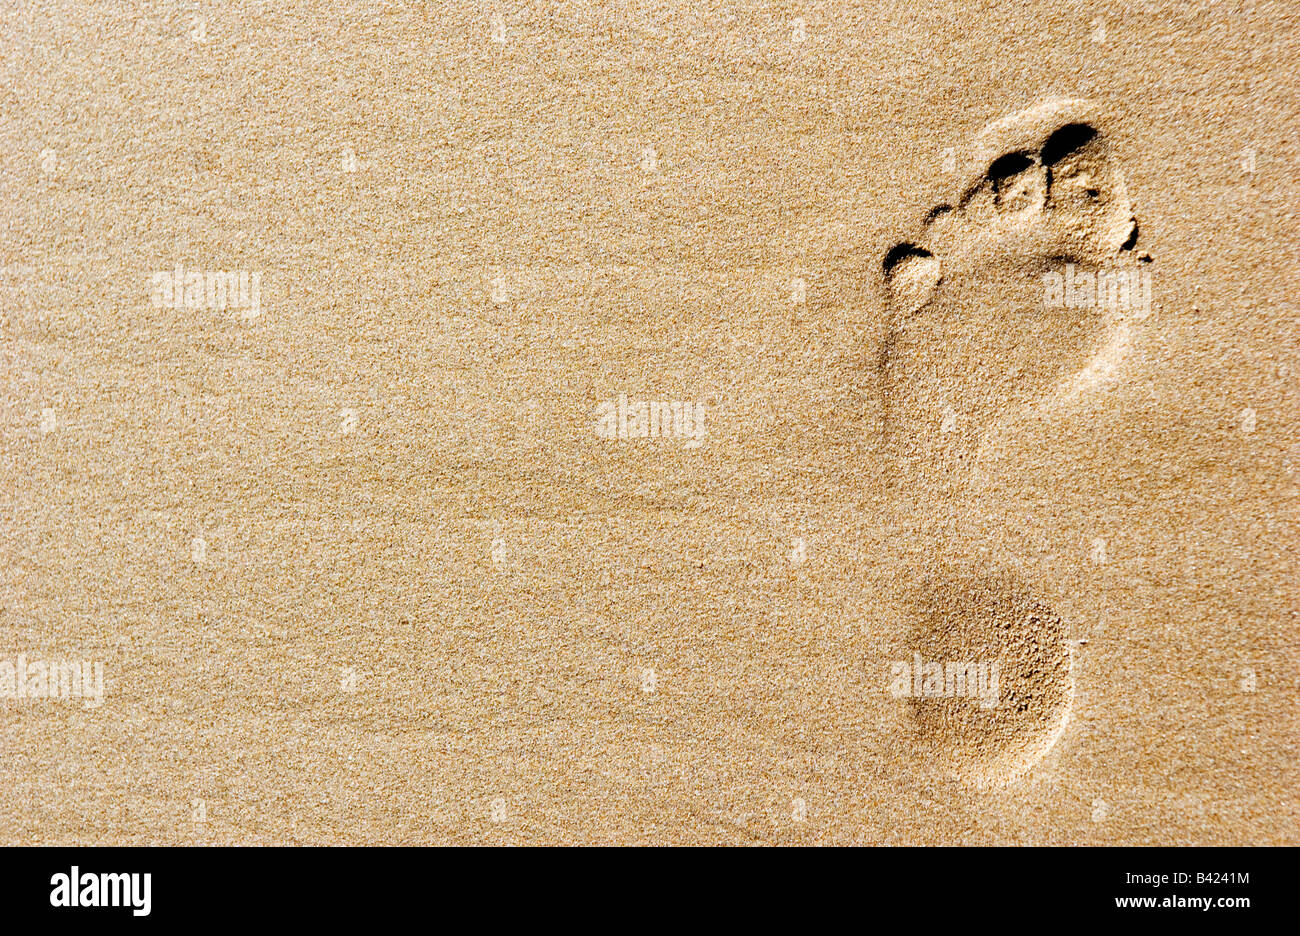 footprint in the sand of a beach - Stock Image